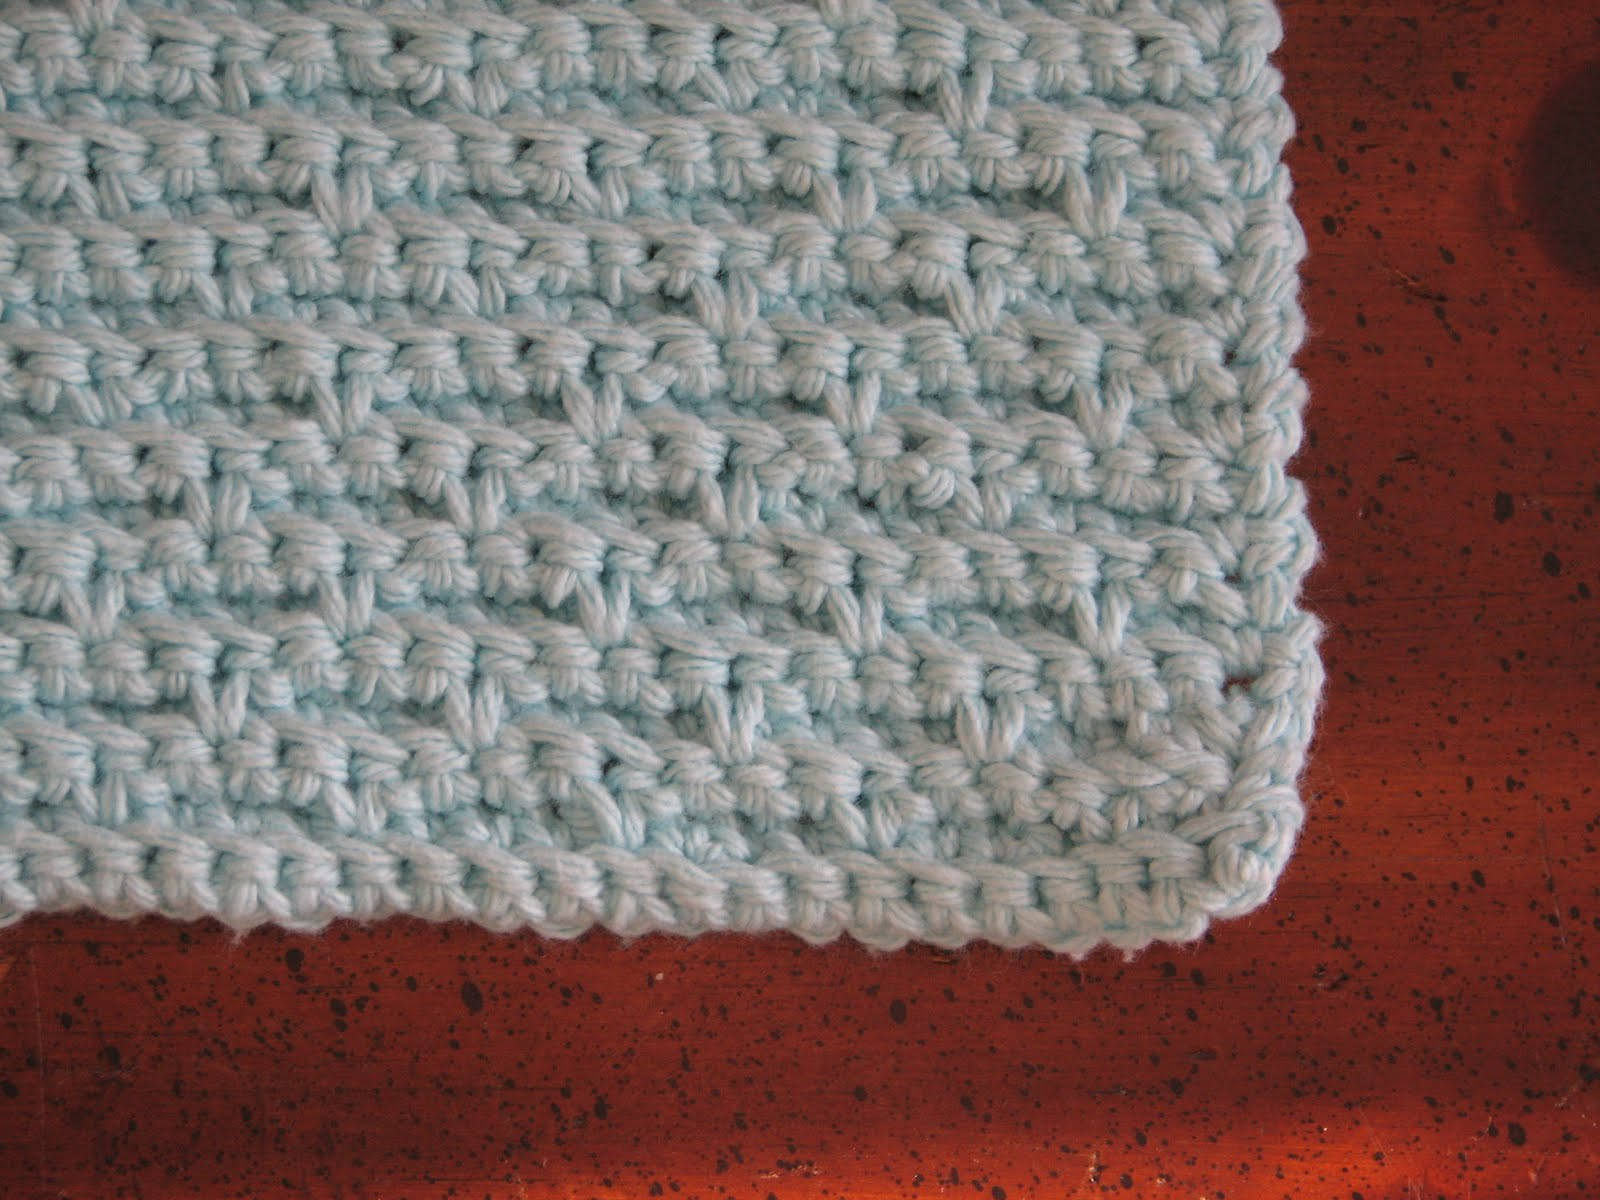 Crochet Stitches Basket : Basket Stitch Dishcloth - Ambassador Crochet Ambassador Crochet